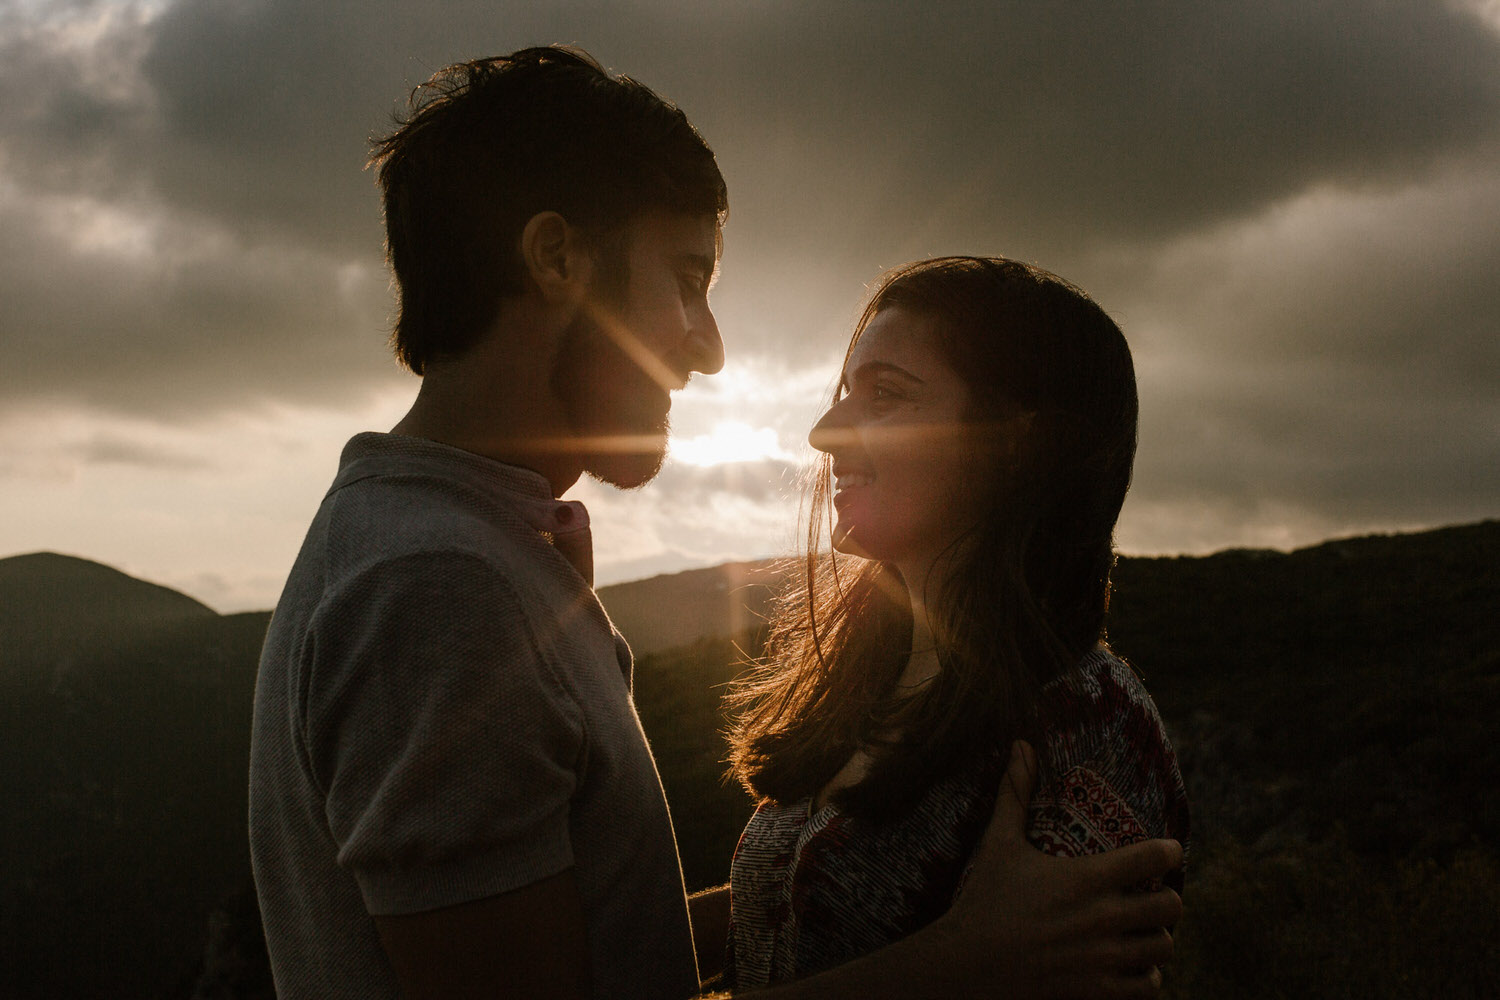 beautiful sunset portrait of a young couple